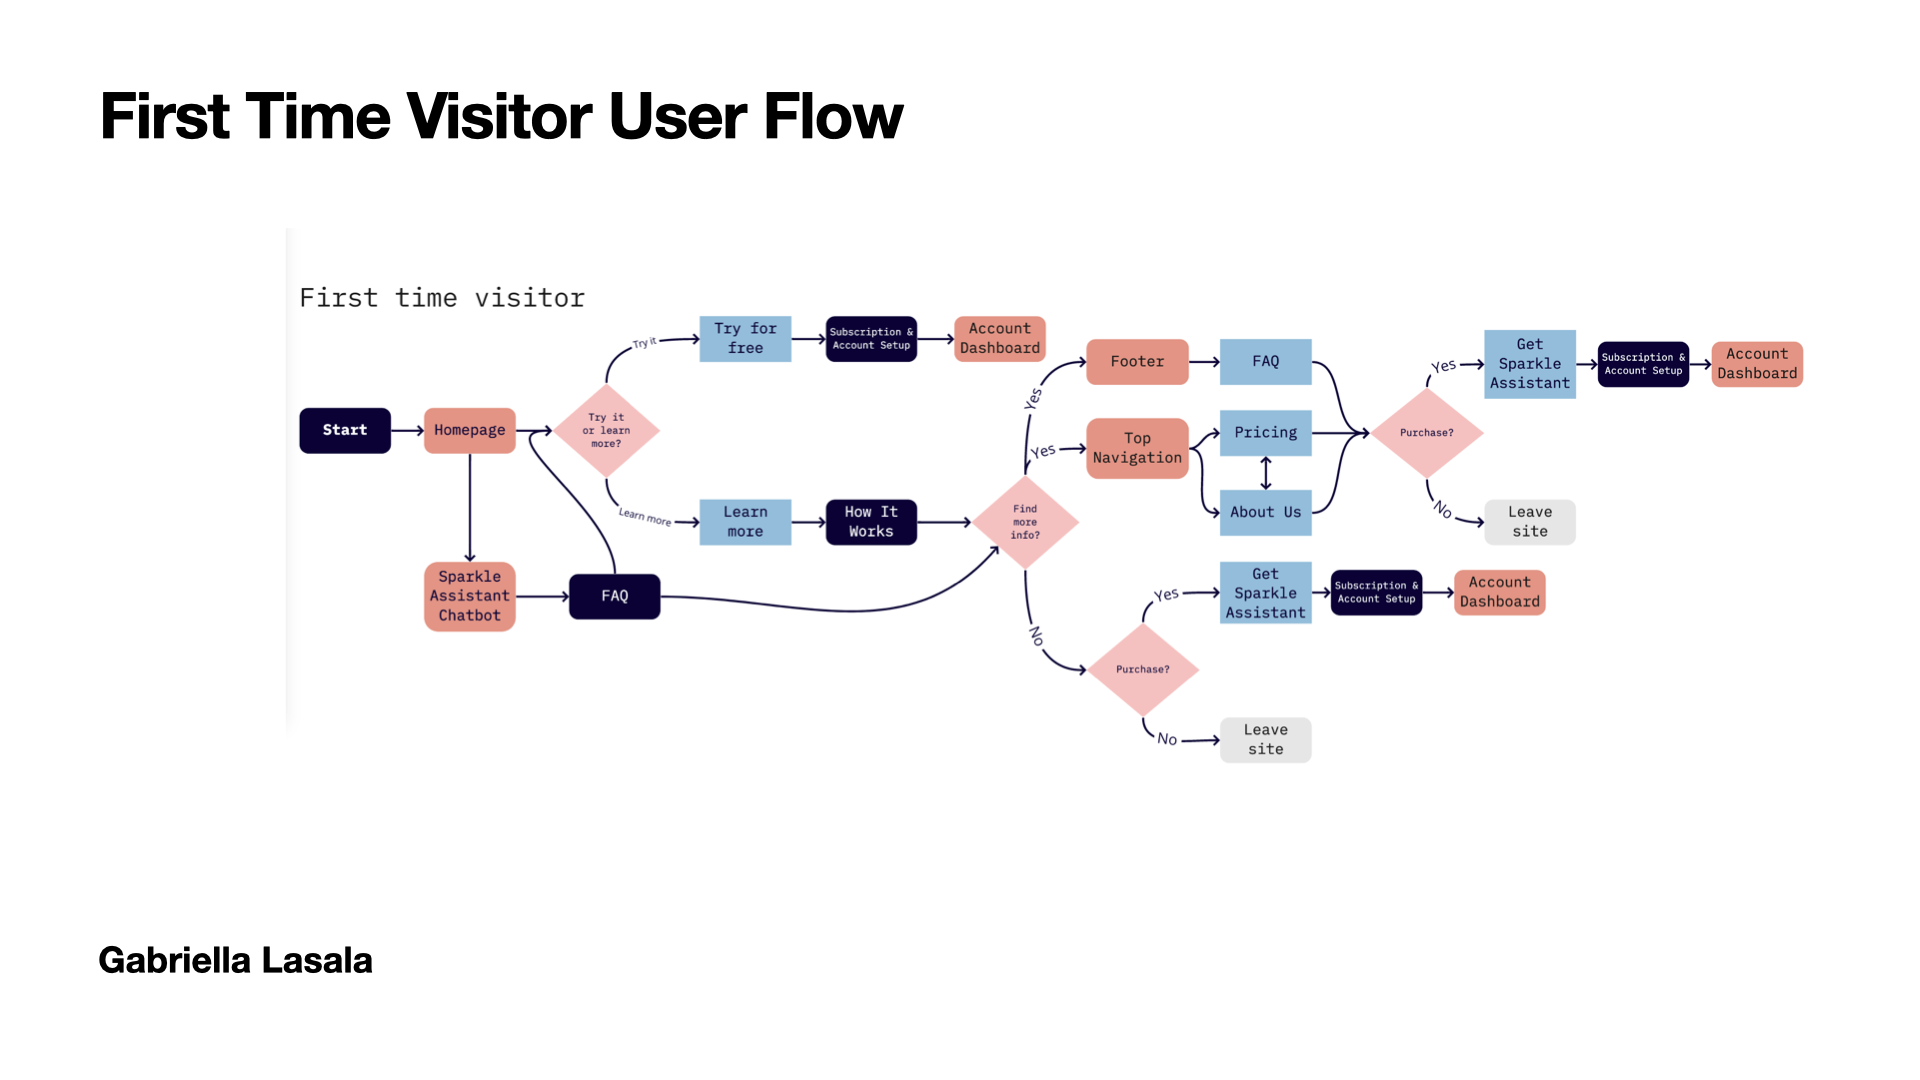 Example of a first time visitor user flow on the marketing website.